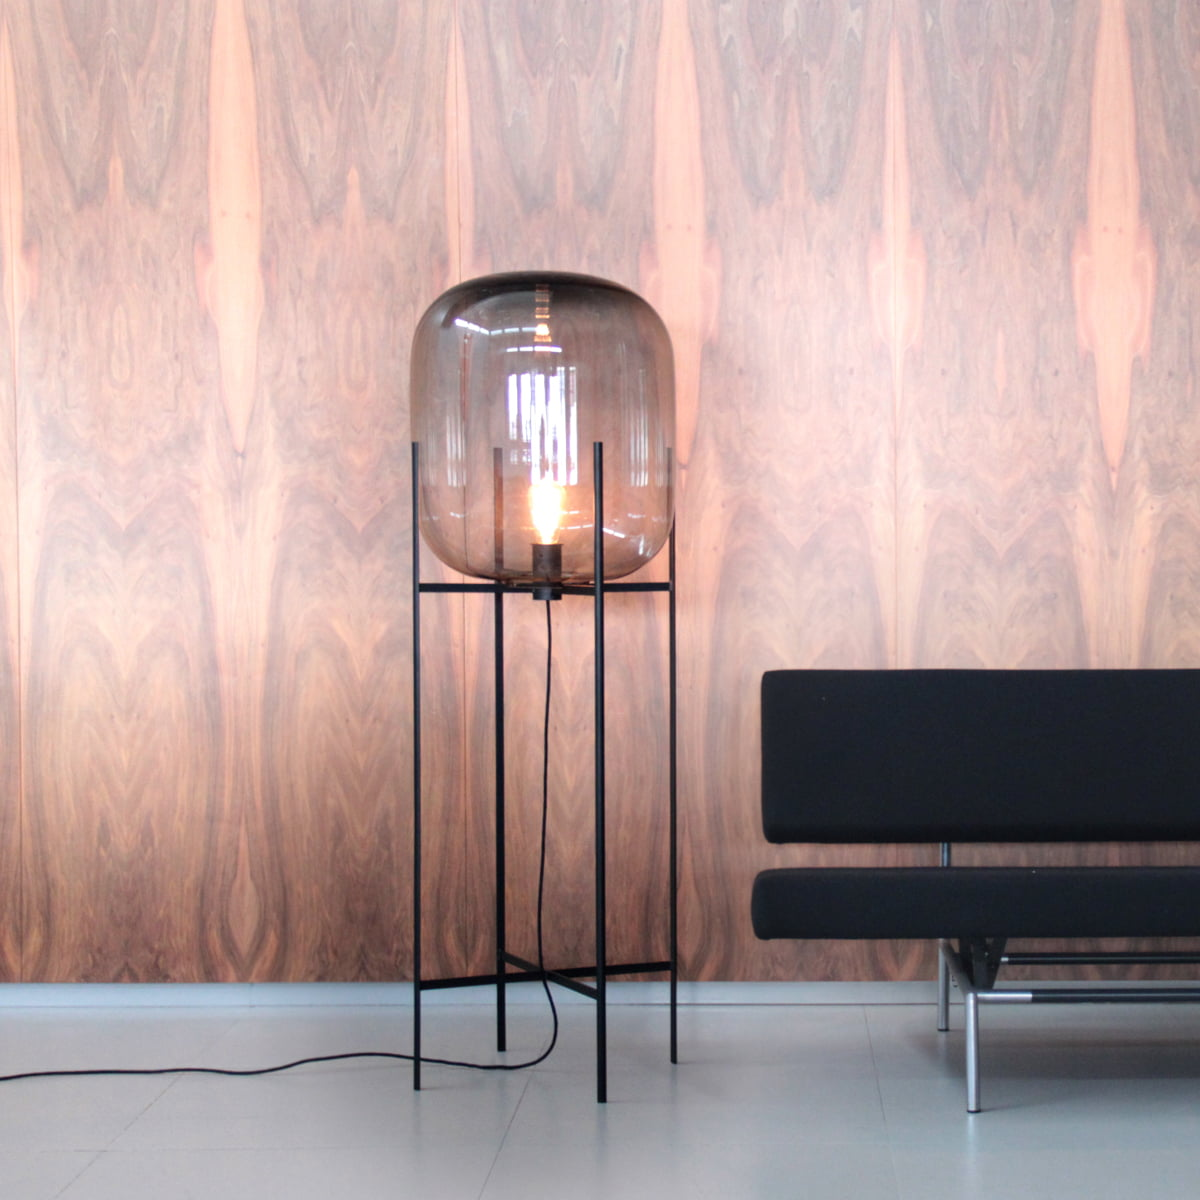 Oda Floor Lamps In Glass Sebastian Herkner For Pulpo : The large oda lamp by pulpo in